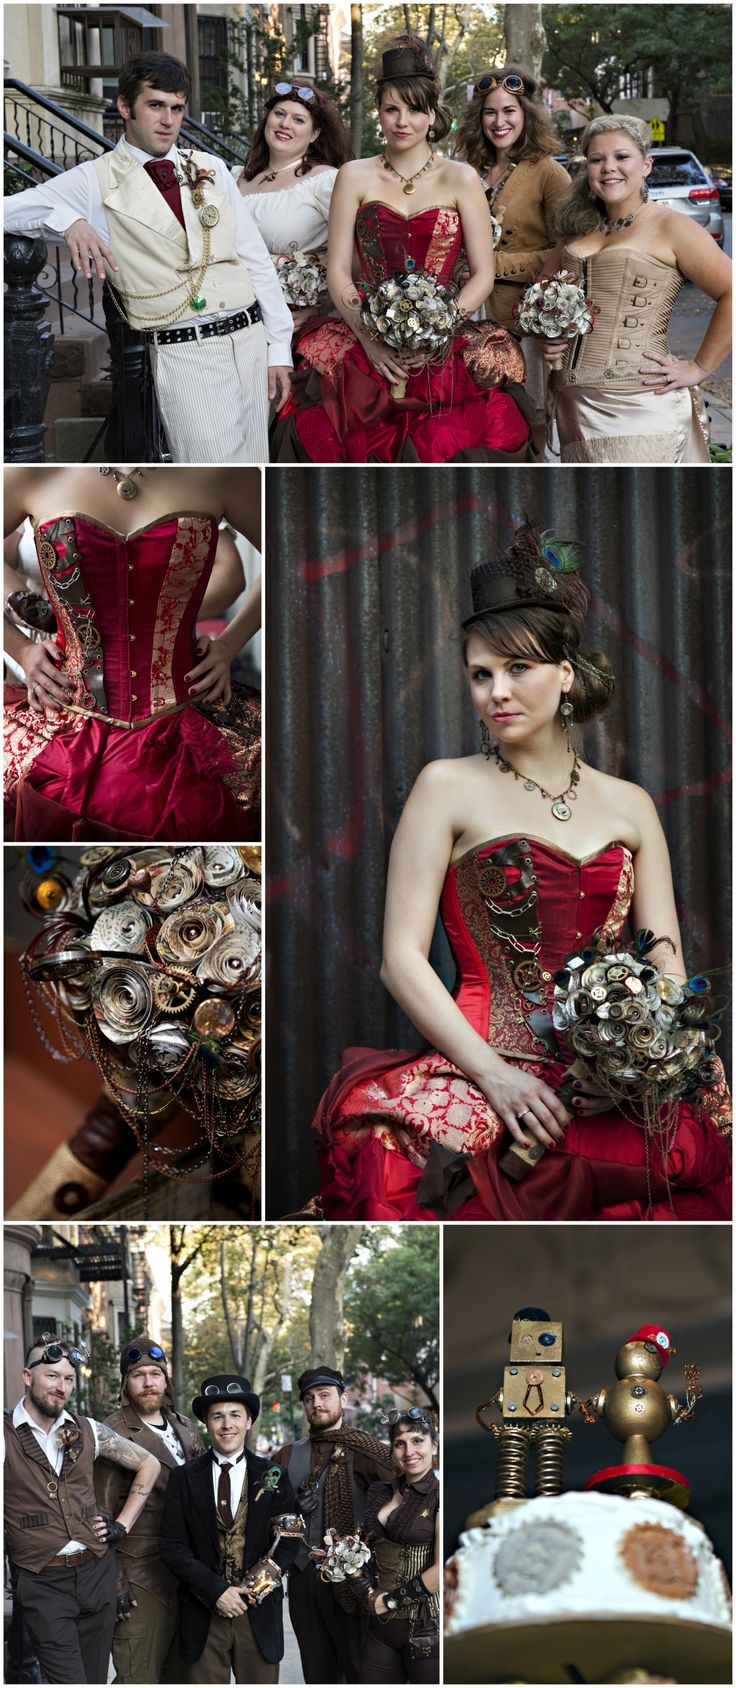 Steampunk wedding, themed celebration, red corset wedding dress, 1800's style // Photomuse